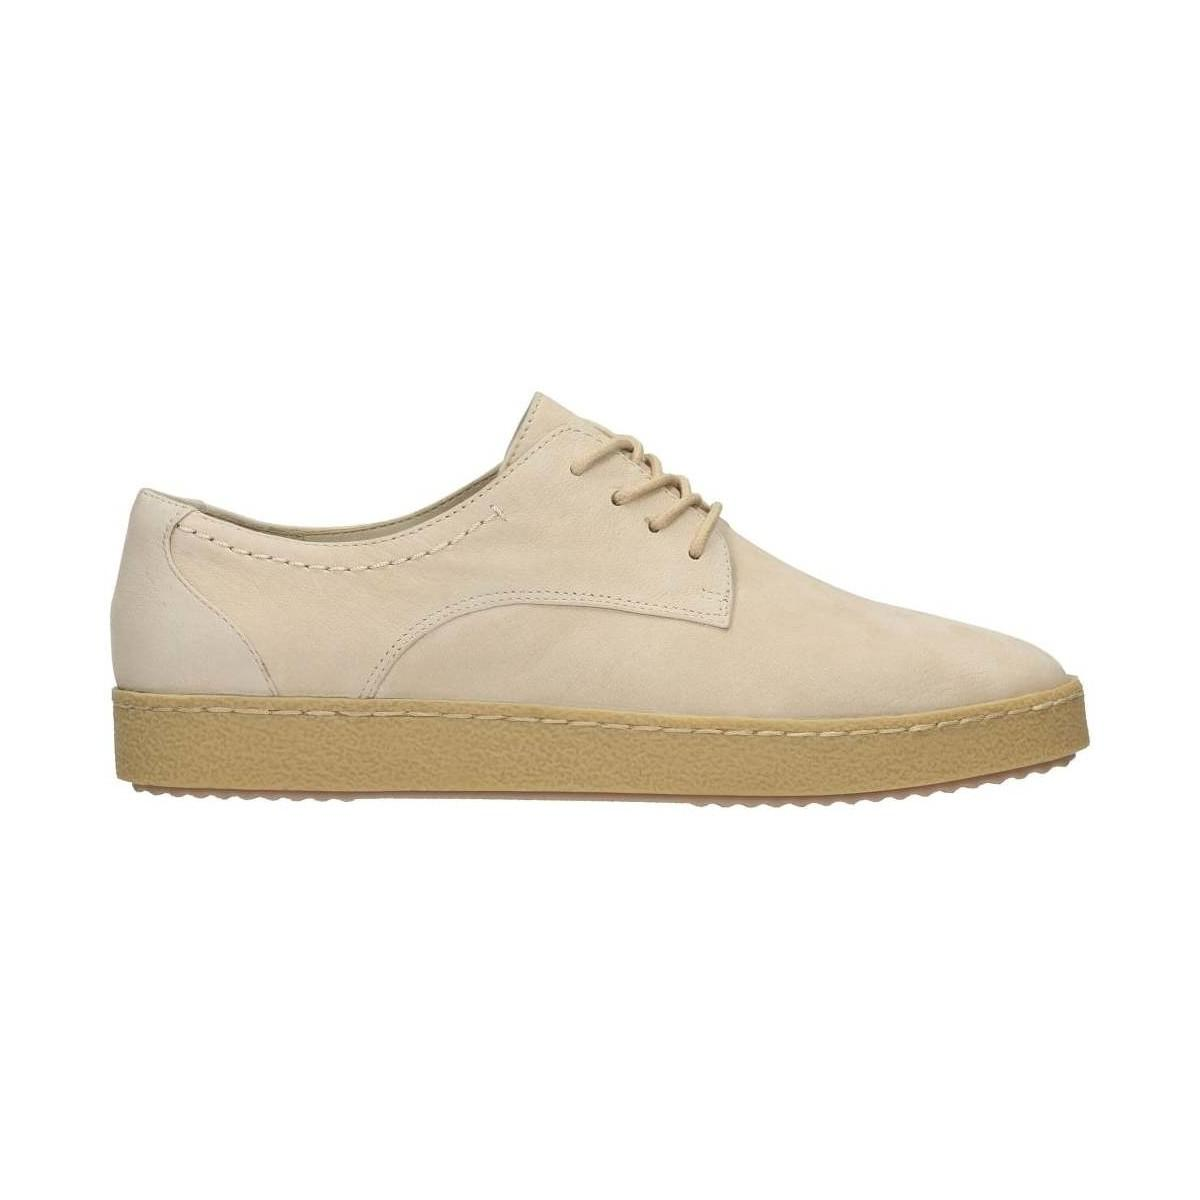 Clarks Lillia Lola women's Shoes (Trainers) in Best Wholesale Sale Online Clearance Finishline Clearance Footlocker Finishline Really Cheap Price With Mastercard Sale Online Eh4PDVn